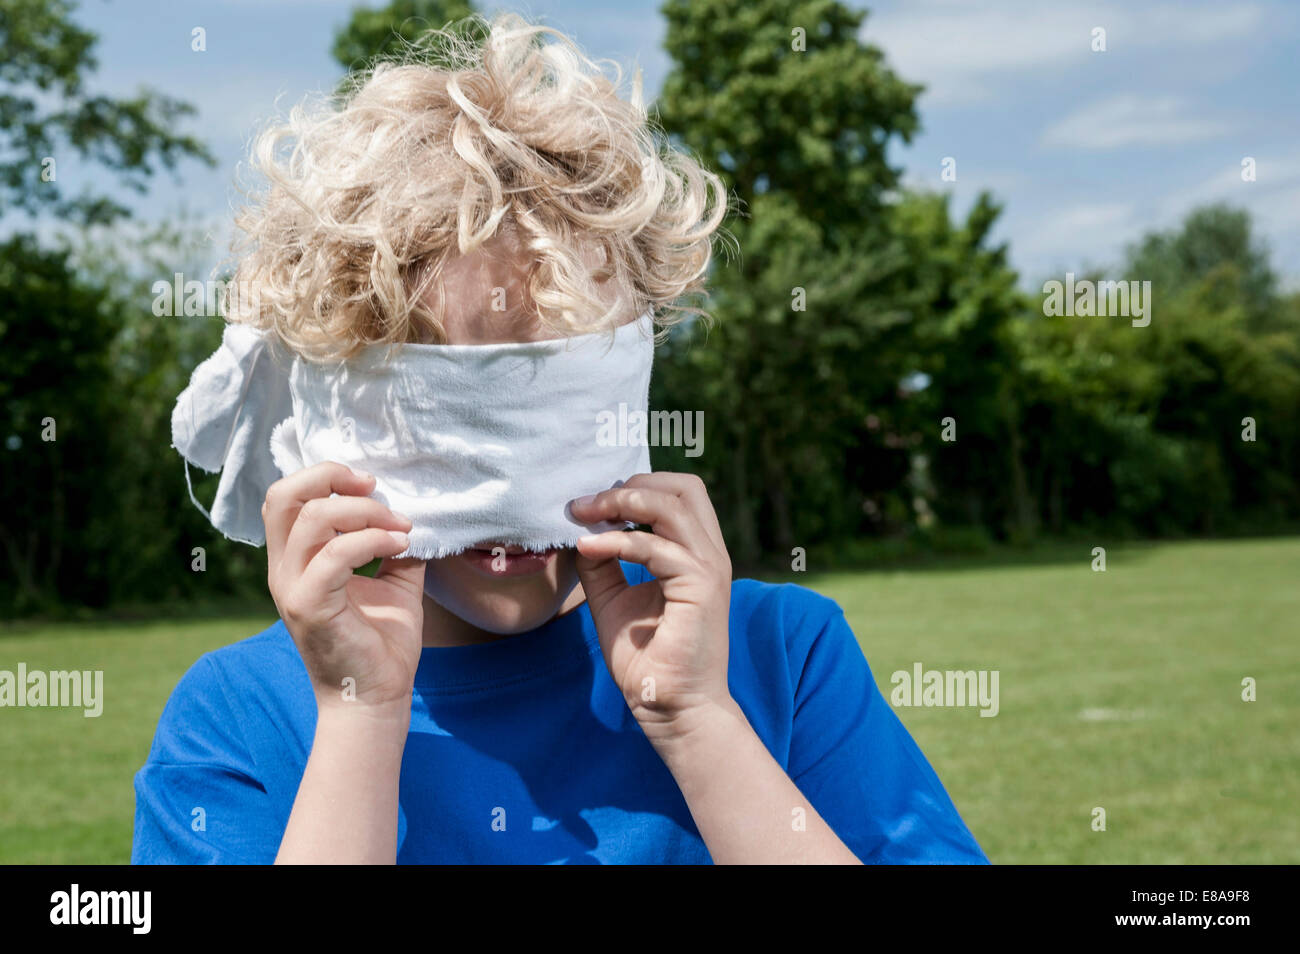 Young blonde boy holding removing blindfold - Stock Image